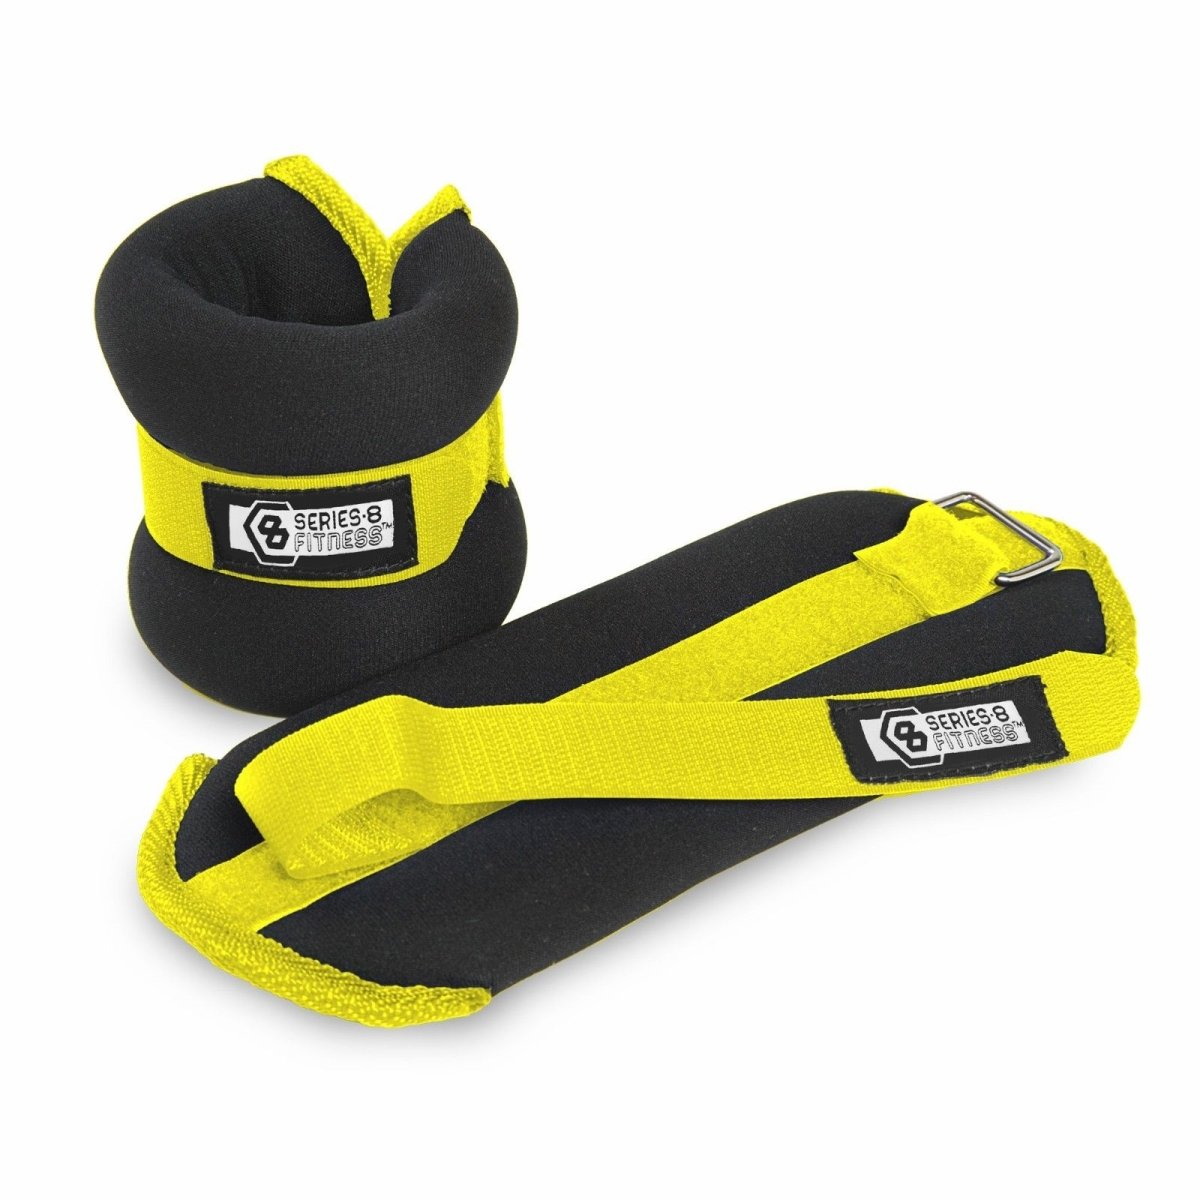 Pure Fitness 1 lbs. Adjustable Ankle Weights